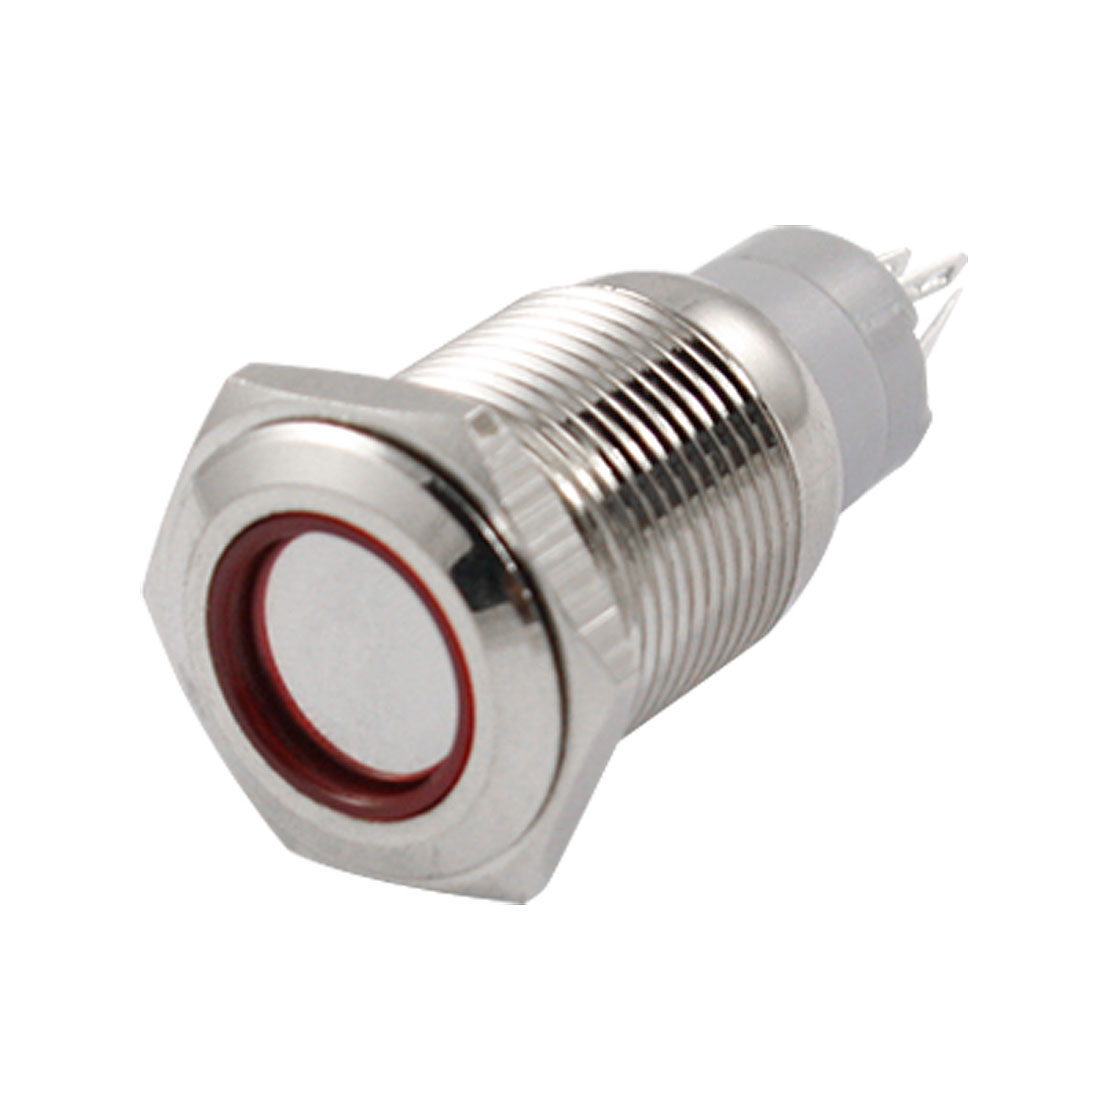 Angel Eye RED Led Light 16mm 12V Stainless Steel Switch Latching Push Button